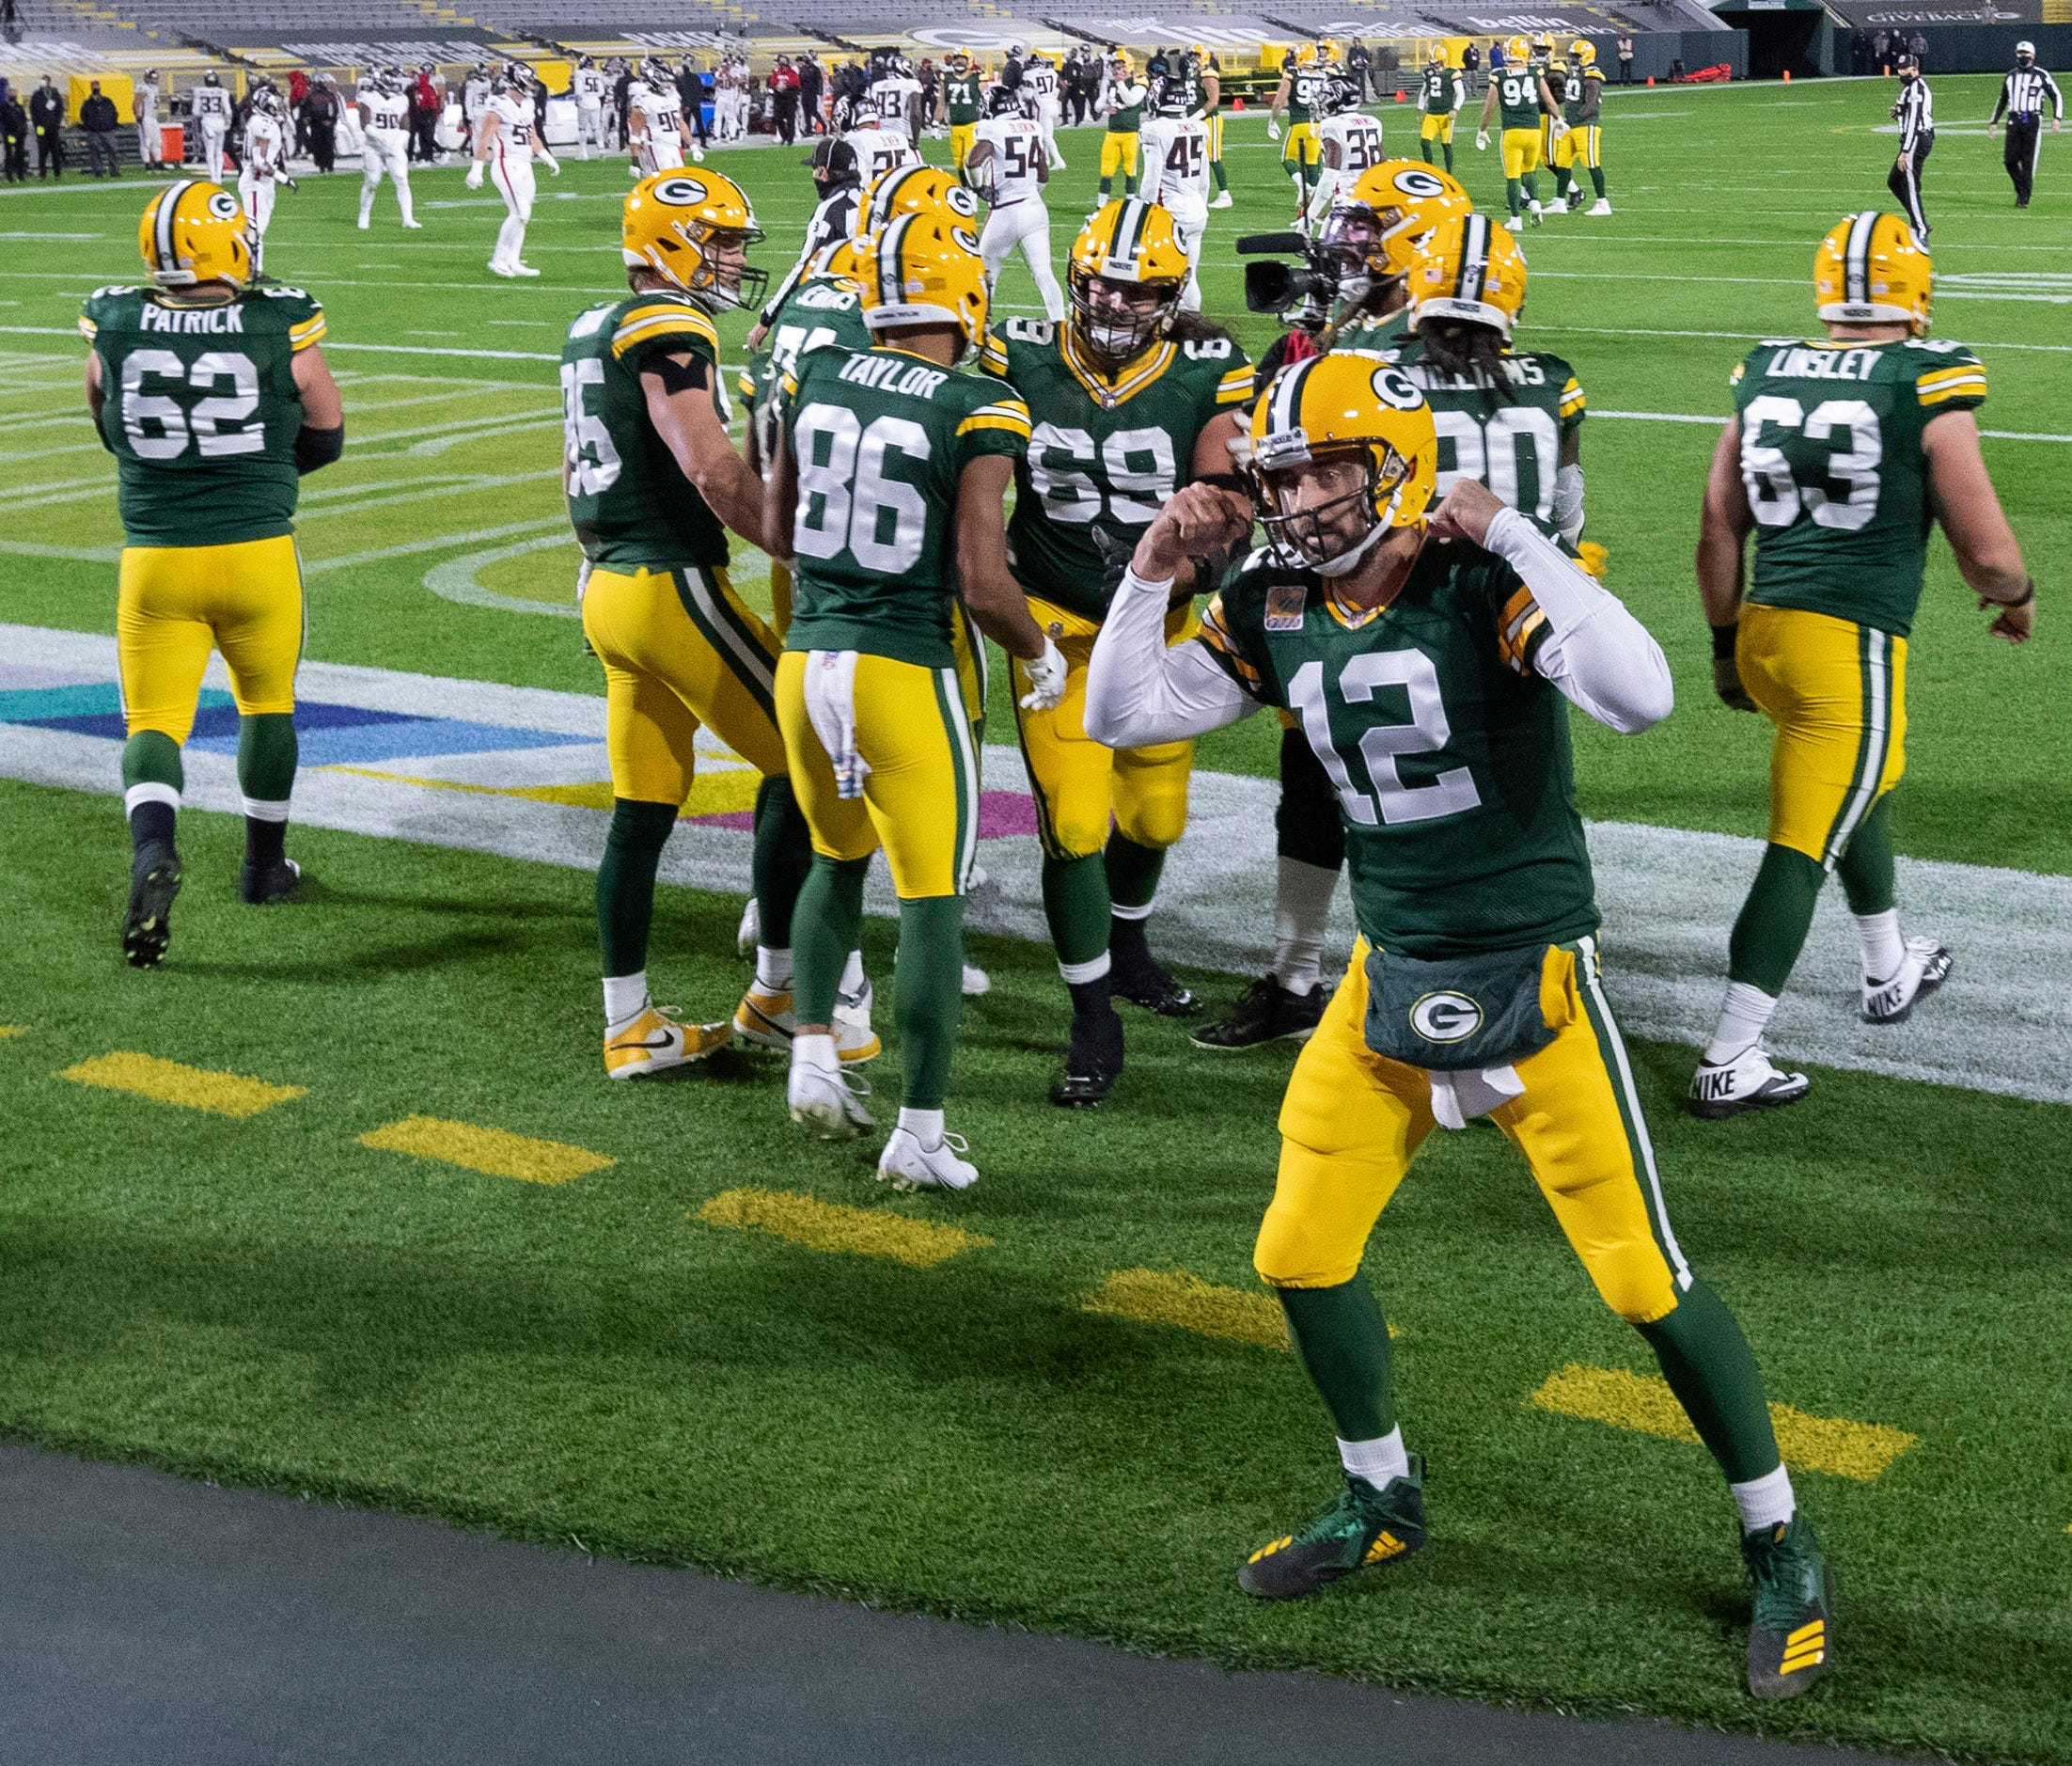 Five Packers Players Who May Not Match Their 2020 Production This Season